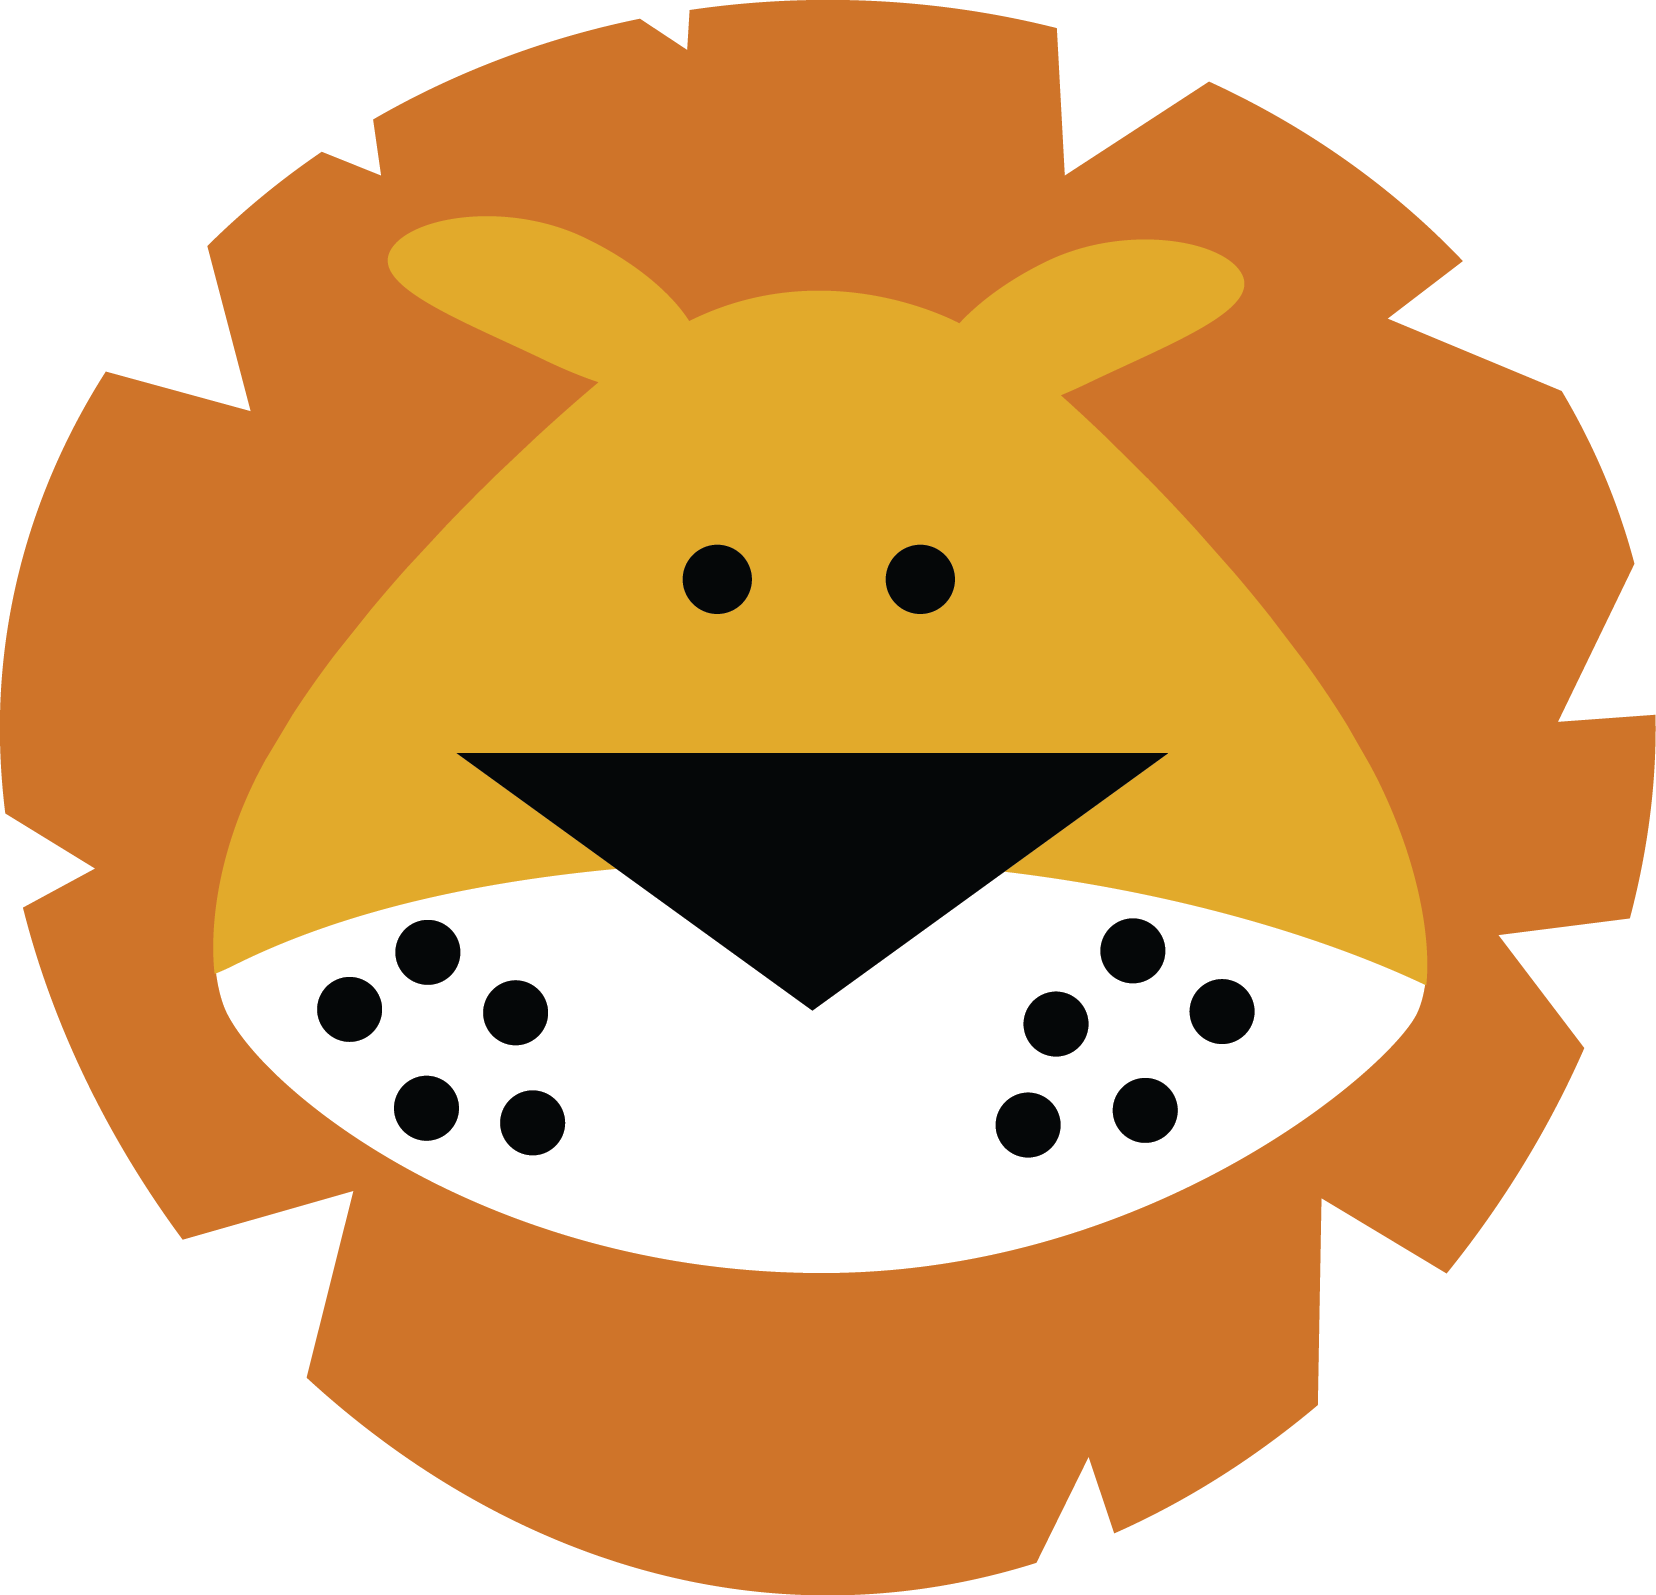 lion face miss kate cuttables scrapbook animals pinterest rh pinterest com cartoon lion face clipart lion face clipart